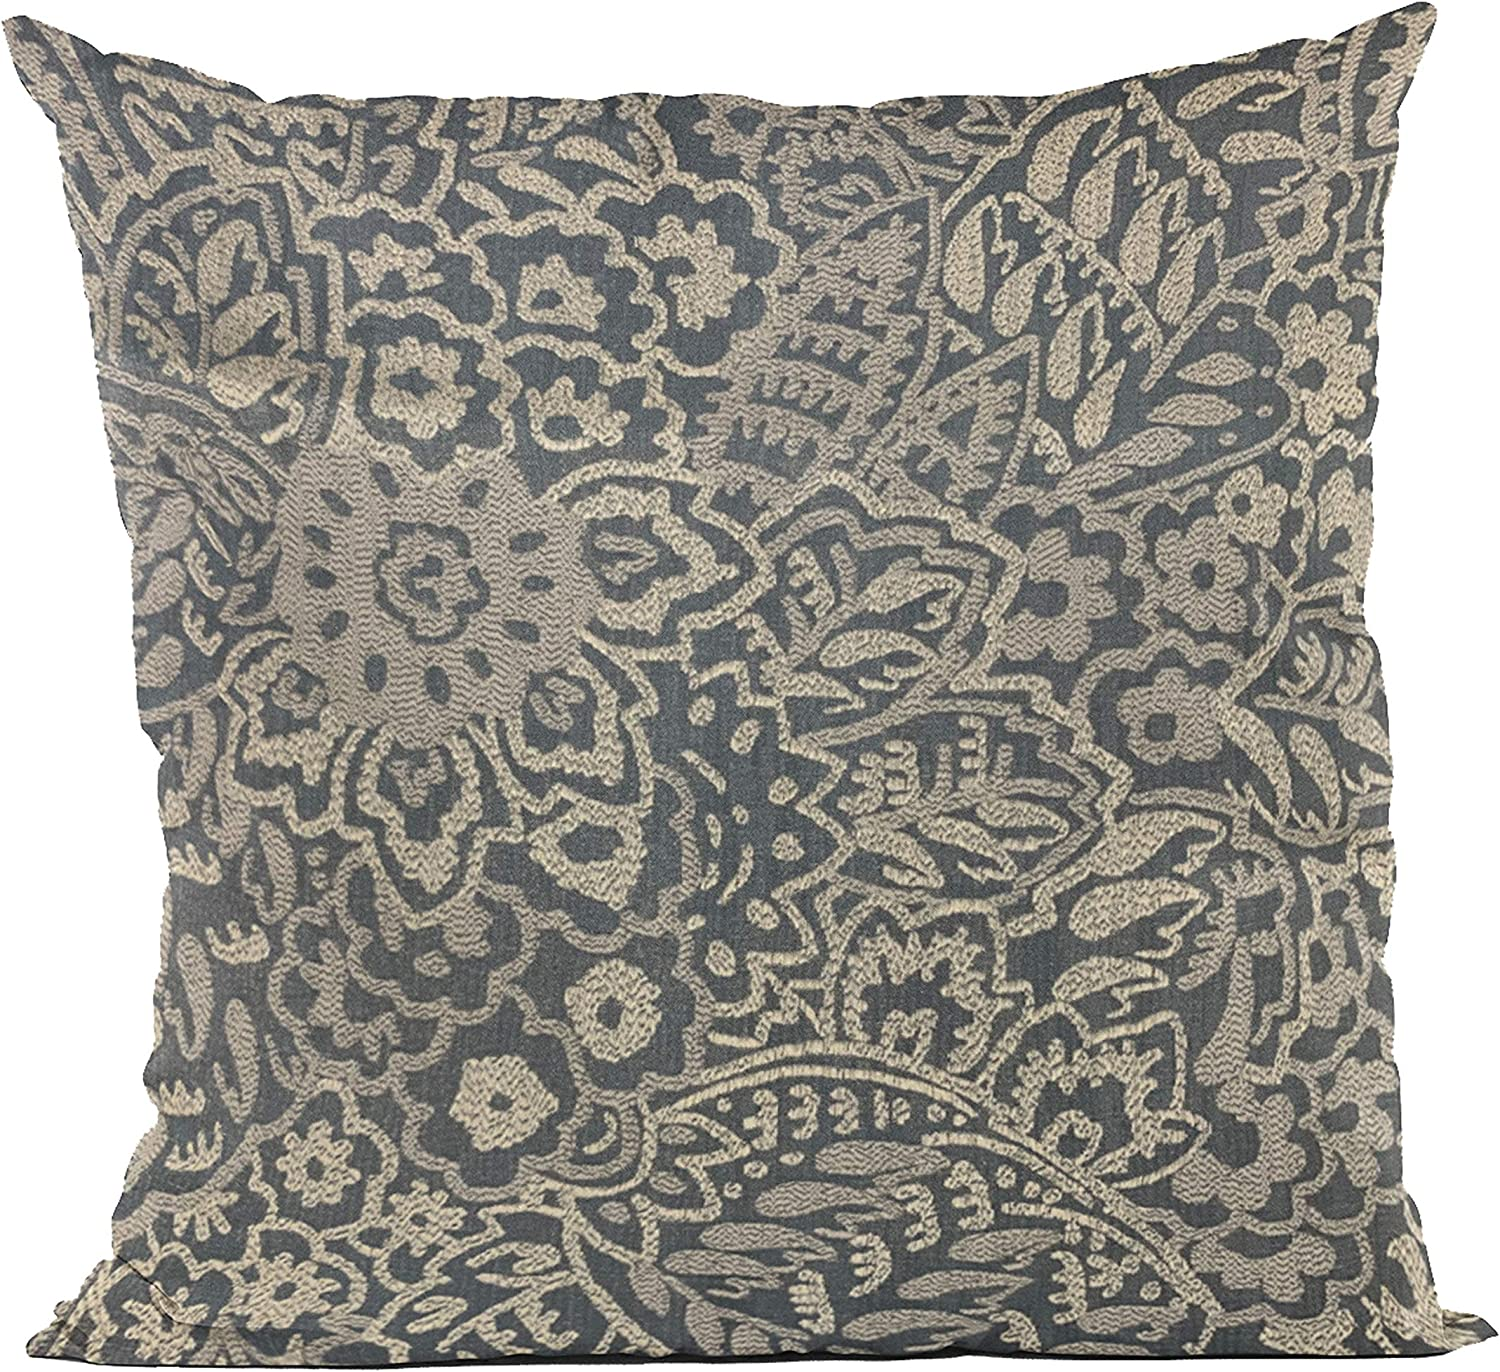 Plutus Max 78% OFF Brands New Orleans Mall Blue Gardens Paisley Pillow 26 Throw Luxury